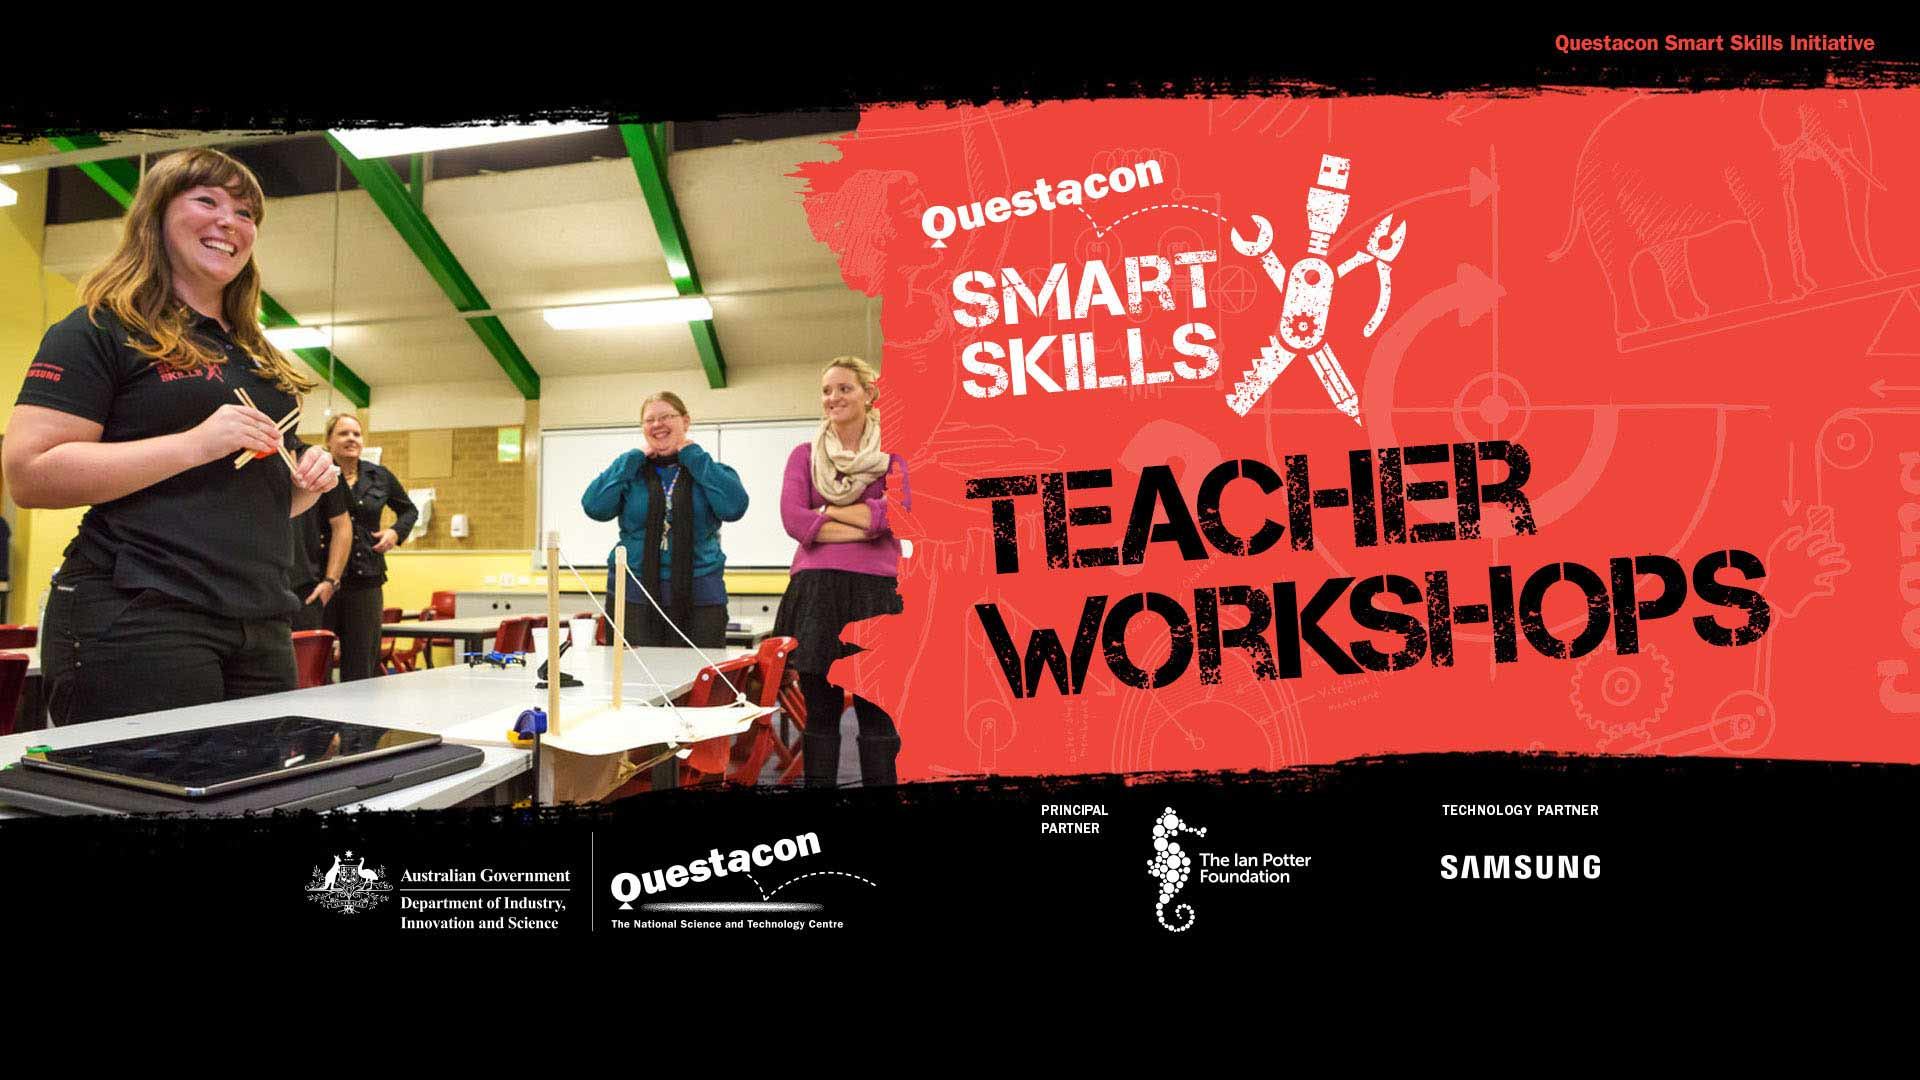 questacon smart skills teacher workshops